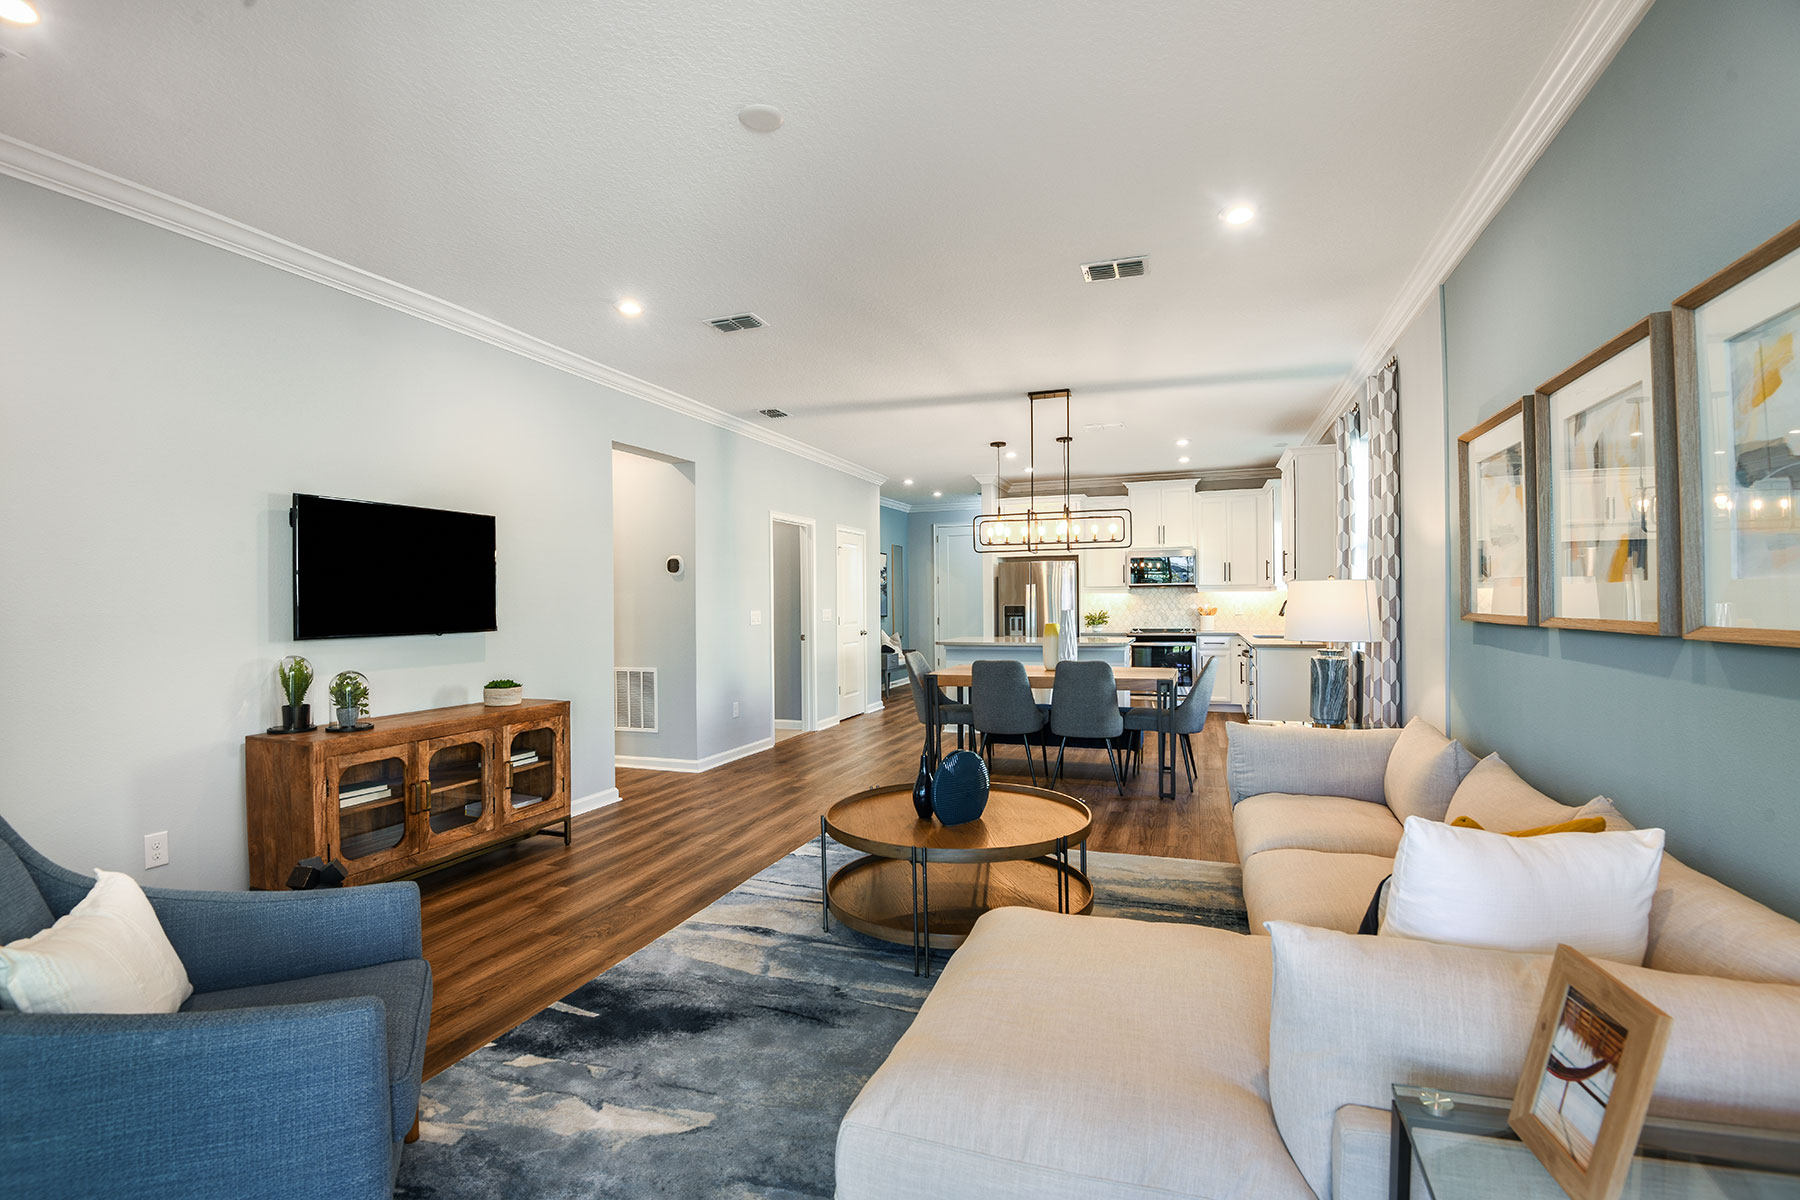 Amelia II Plan Greatroom at Parkview at Long Lake Ranch in Lutz Florida by Mattamy Homes